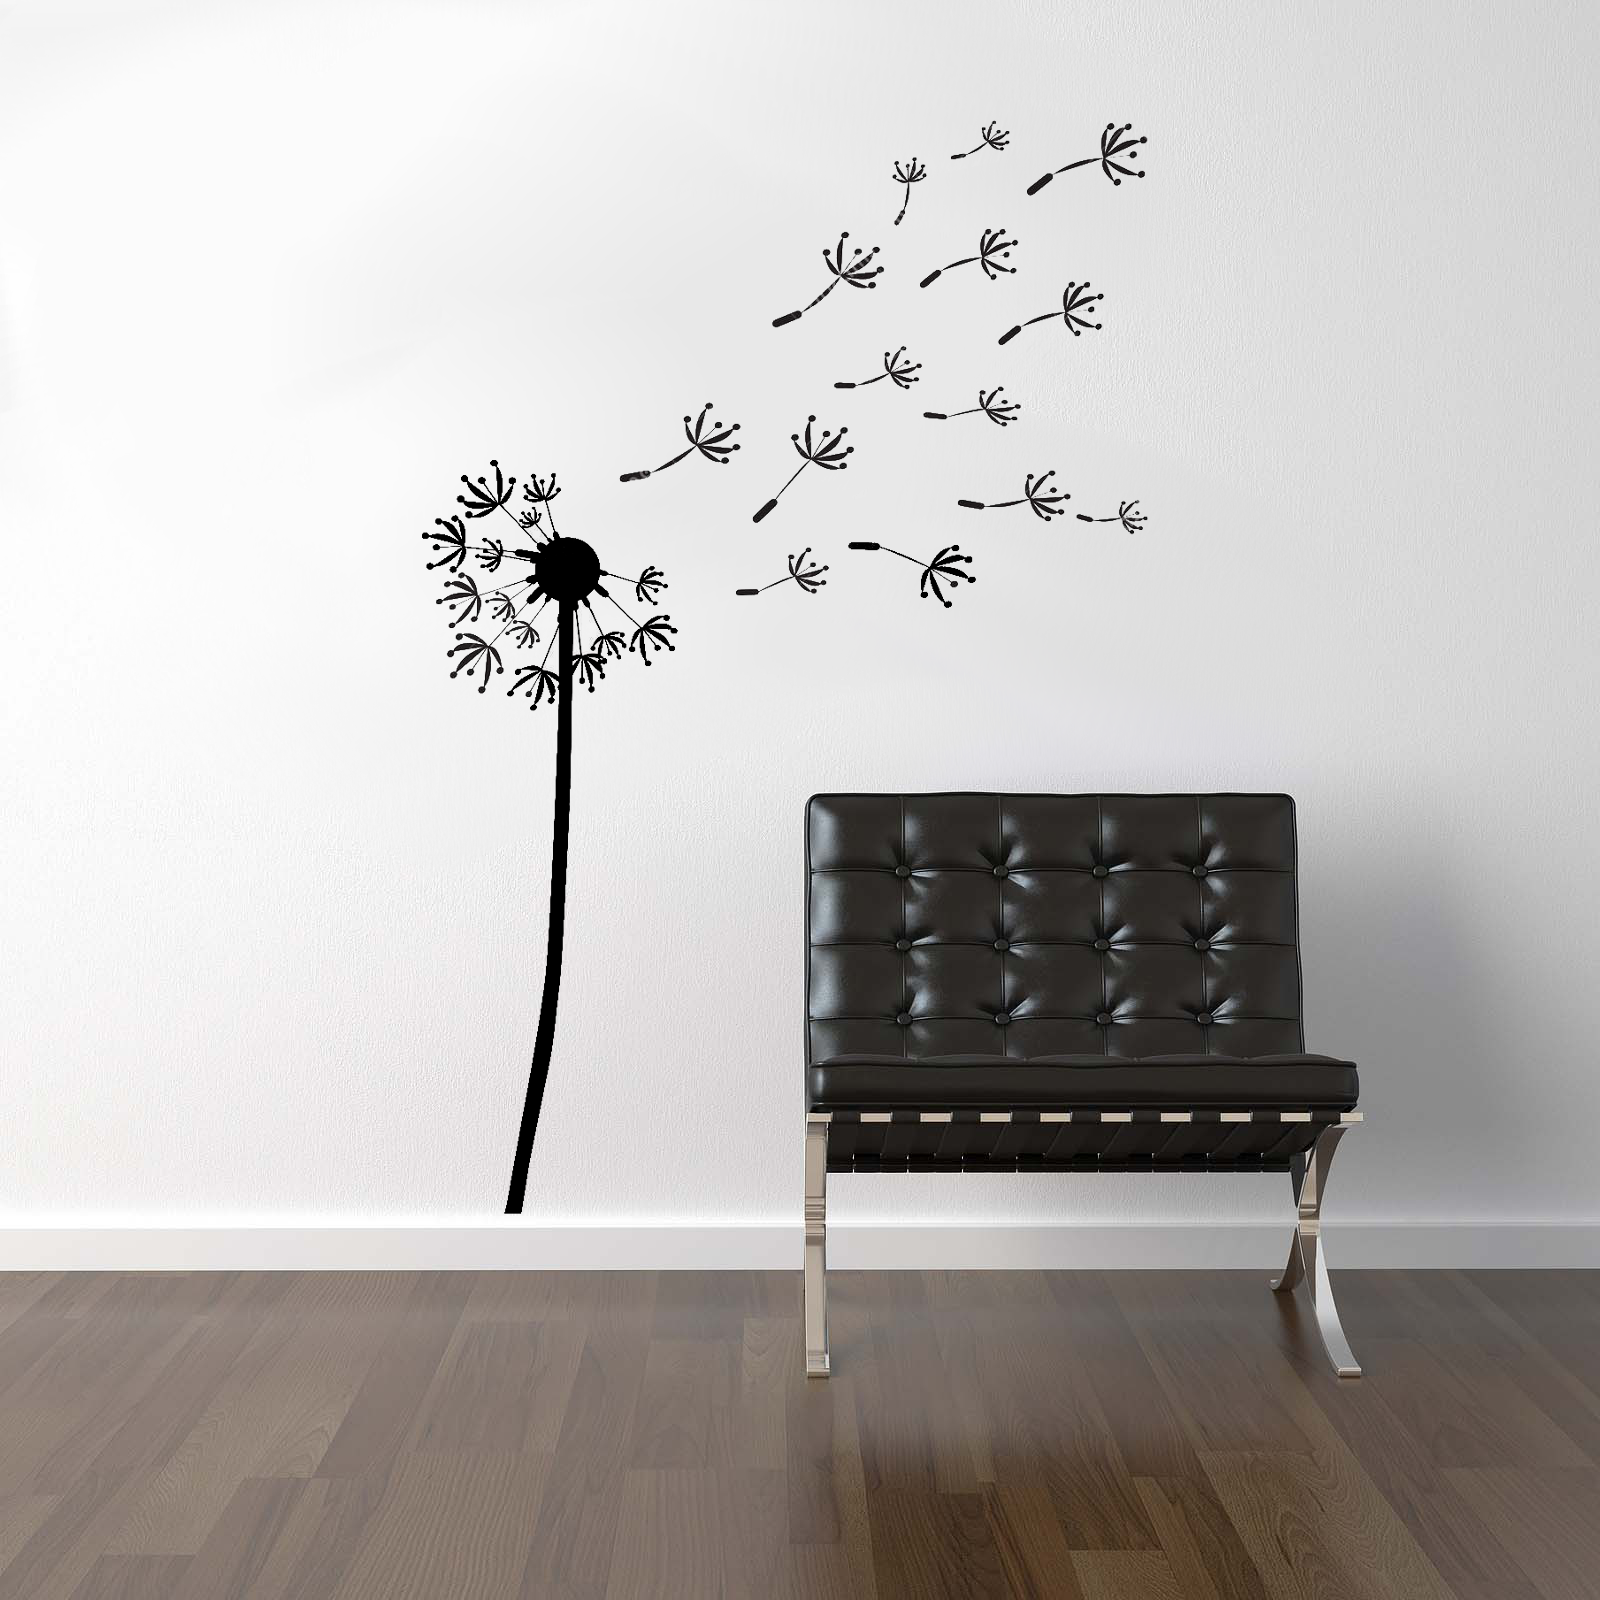 streetwall wandtattoo pusteblume wandbild aufkleber. Black Bedroom Furniture Sets. Home Design Ideas